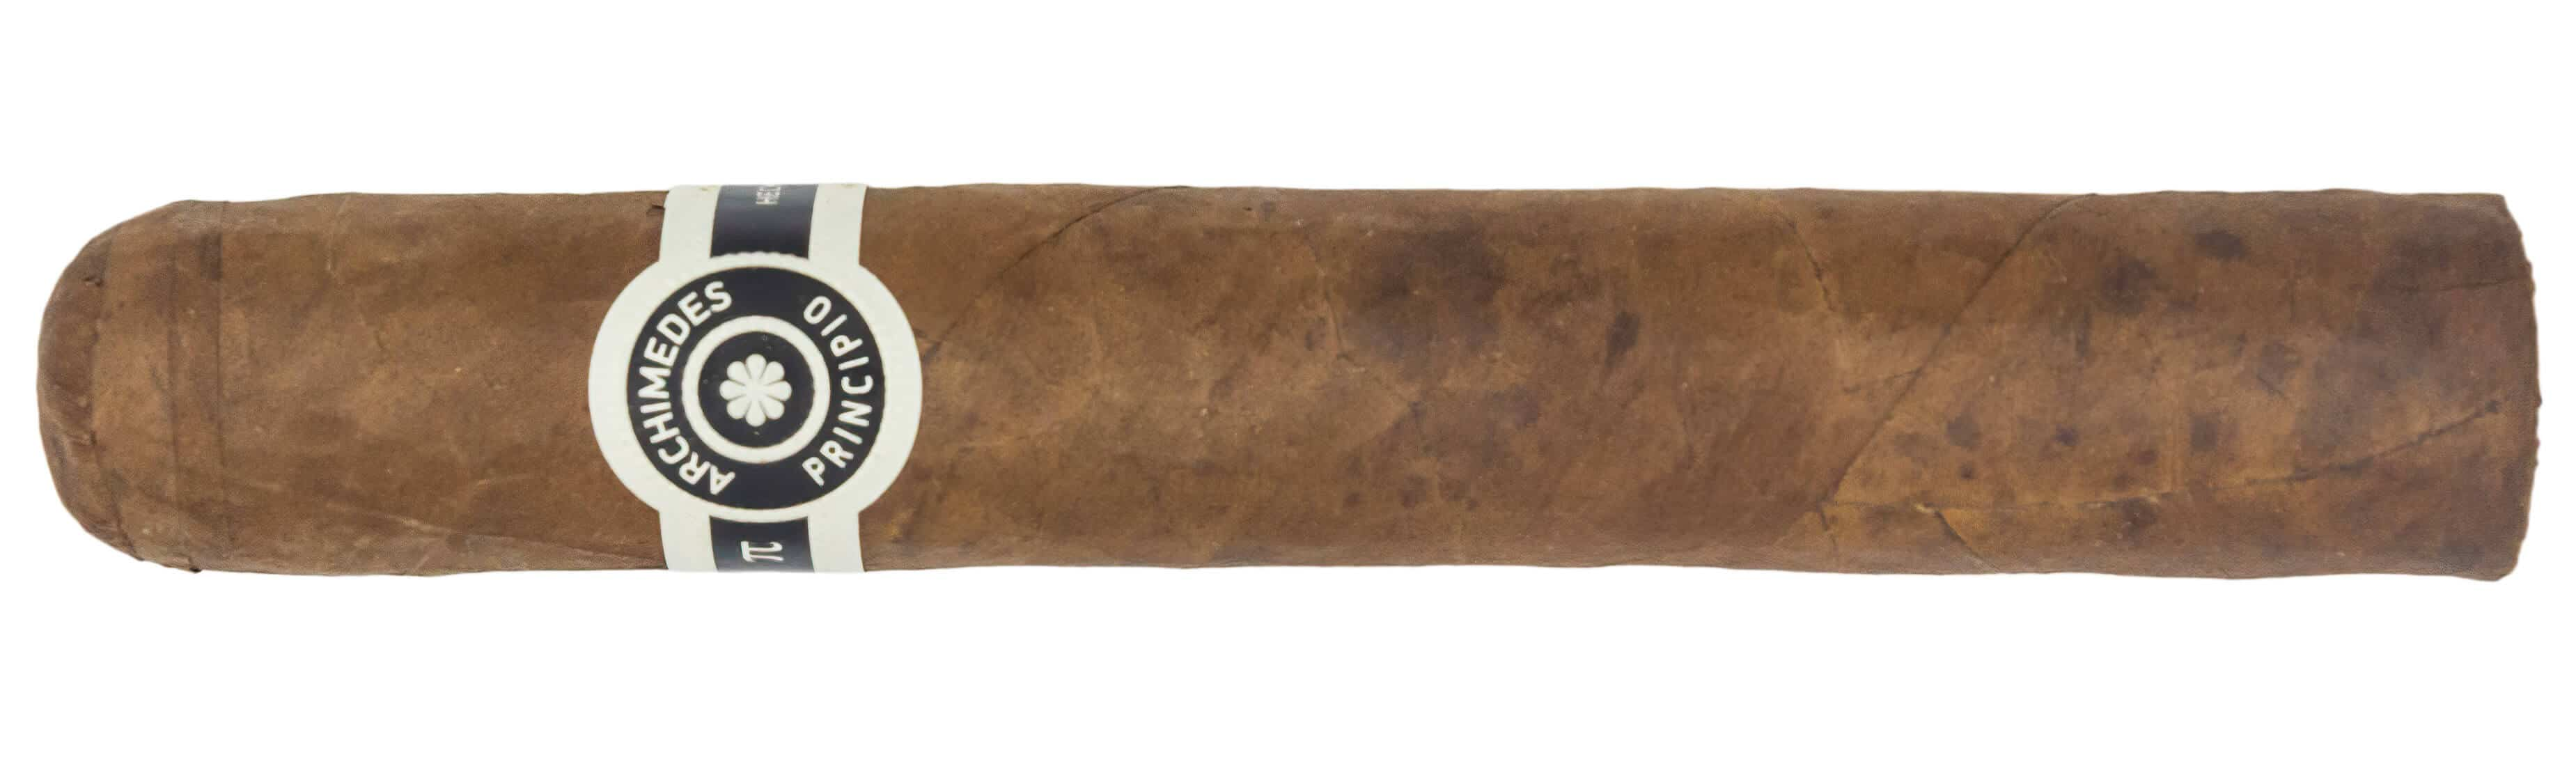 Blind Cigar Review: Curivari | Archimedes 550